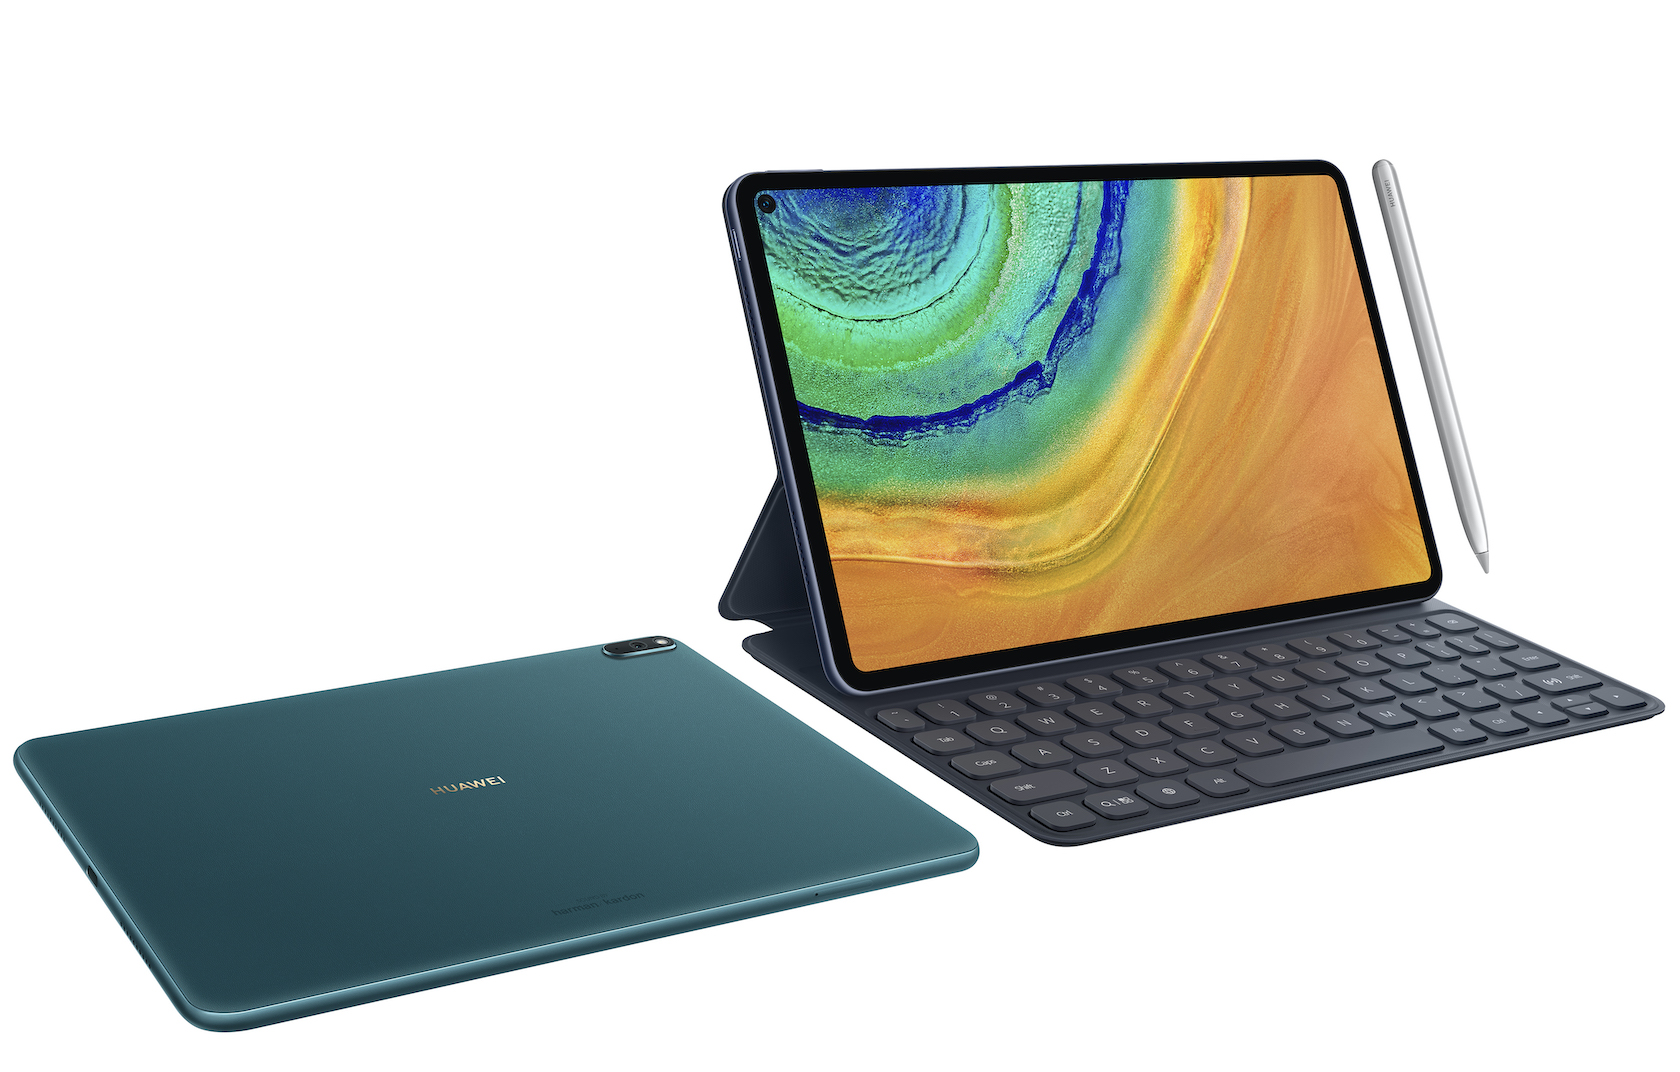 Huawei MatePad Pro is an Android iPad Pro clone with optional 5G - SlashGear